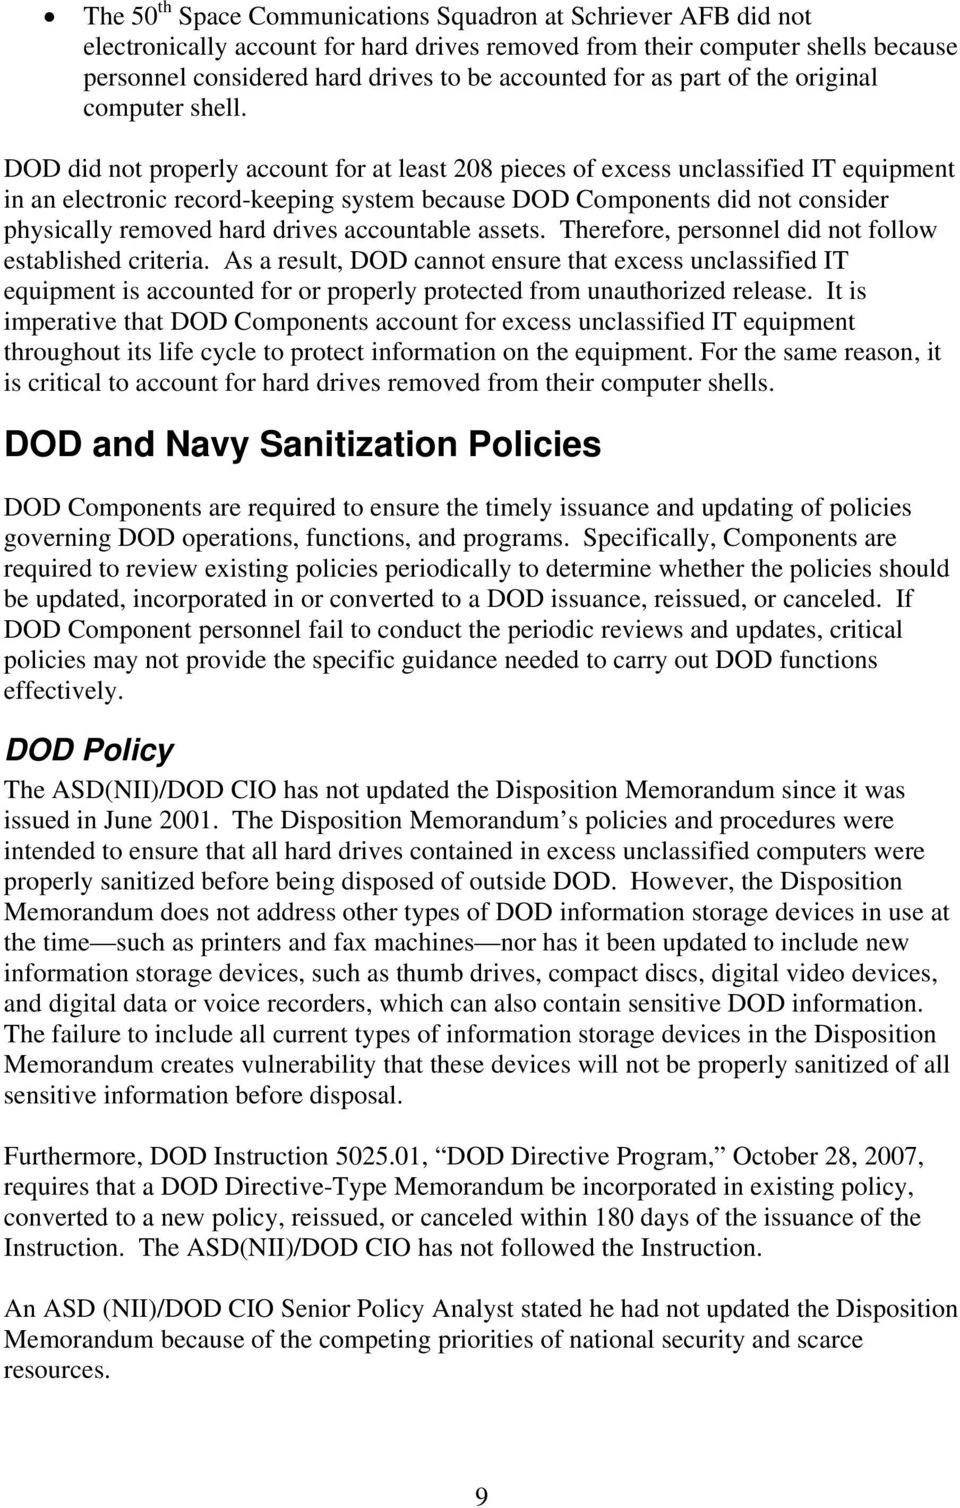 DOD did not properly account for at least 208 pieces of excess unclassified IT equipment in an electronic record-keeping system because DOD Components did not consider physically removed hard drives